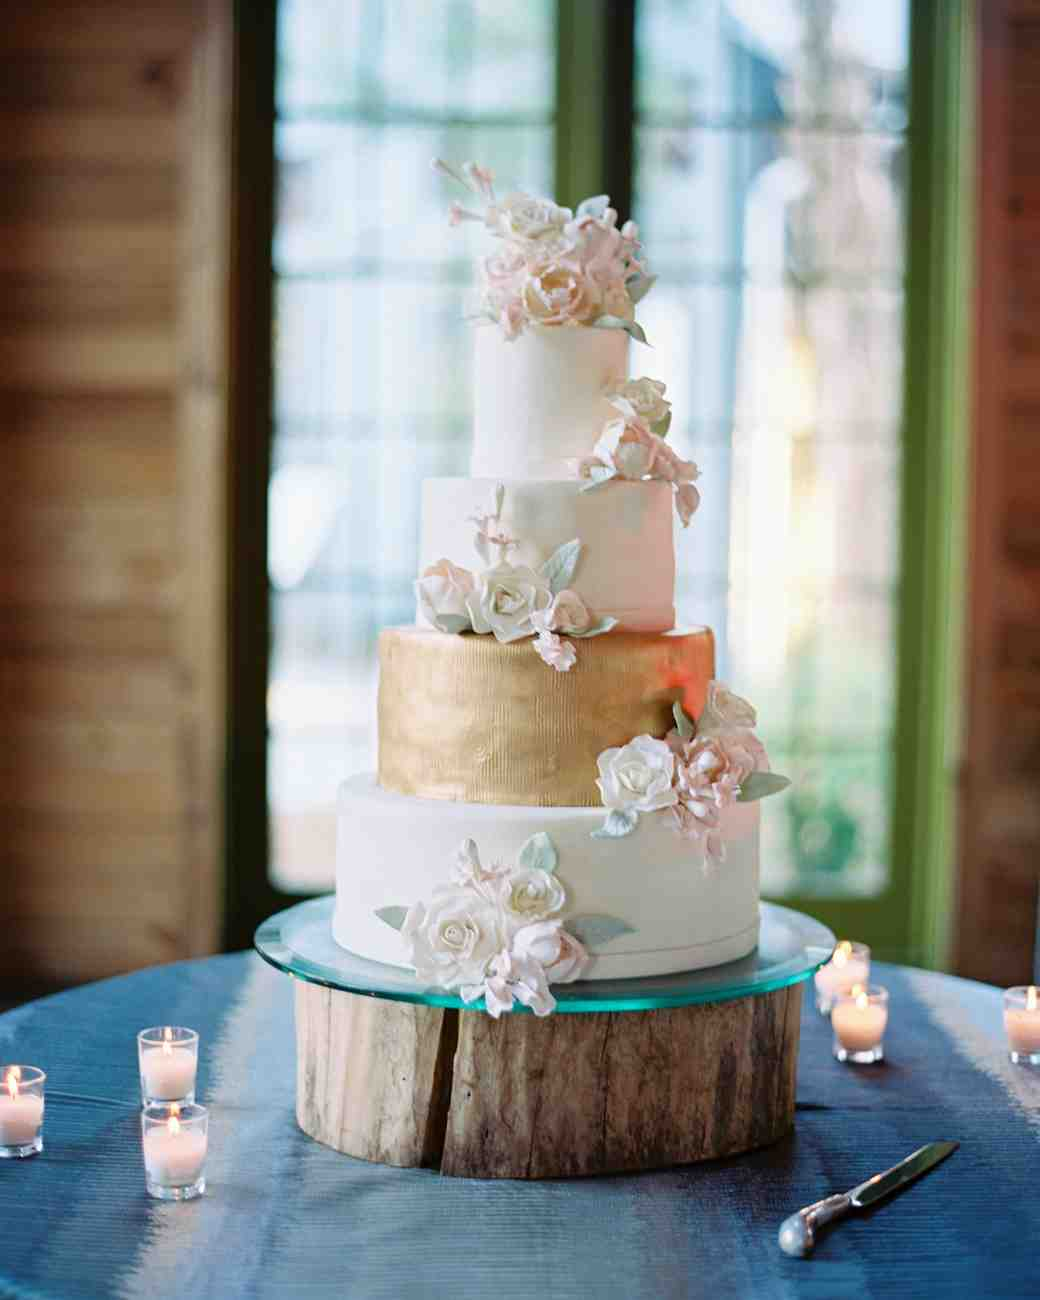 Wedding Cakes With Flowers On Top: Wedding Cakes With Sugar Flowers That Look Incredibly Real